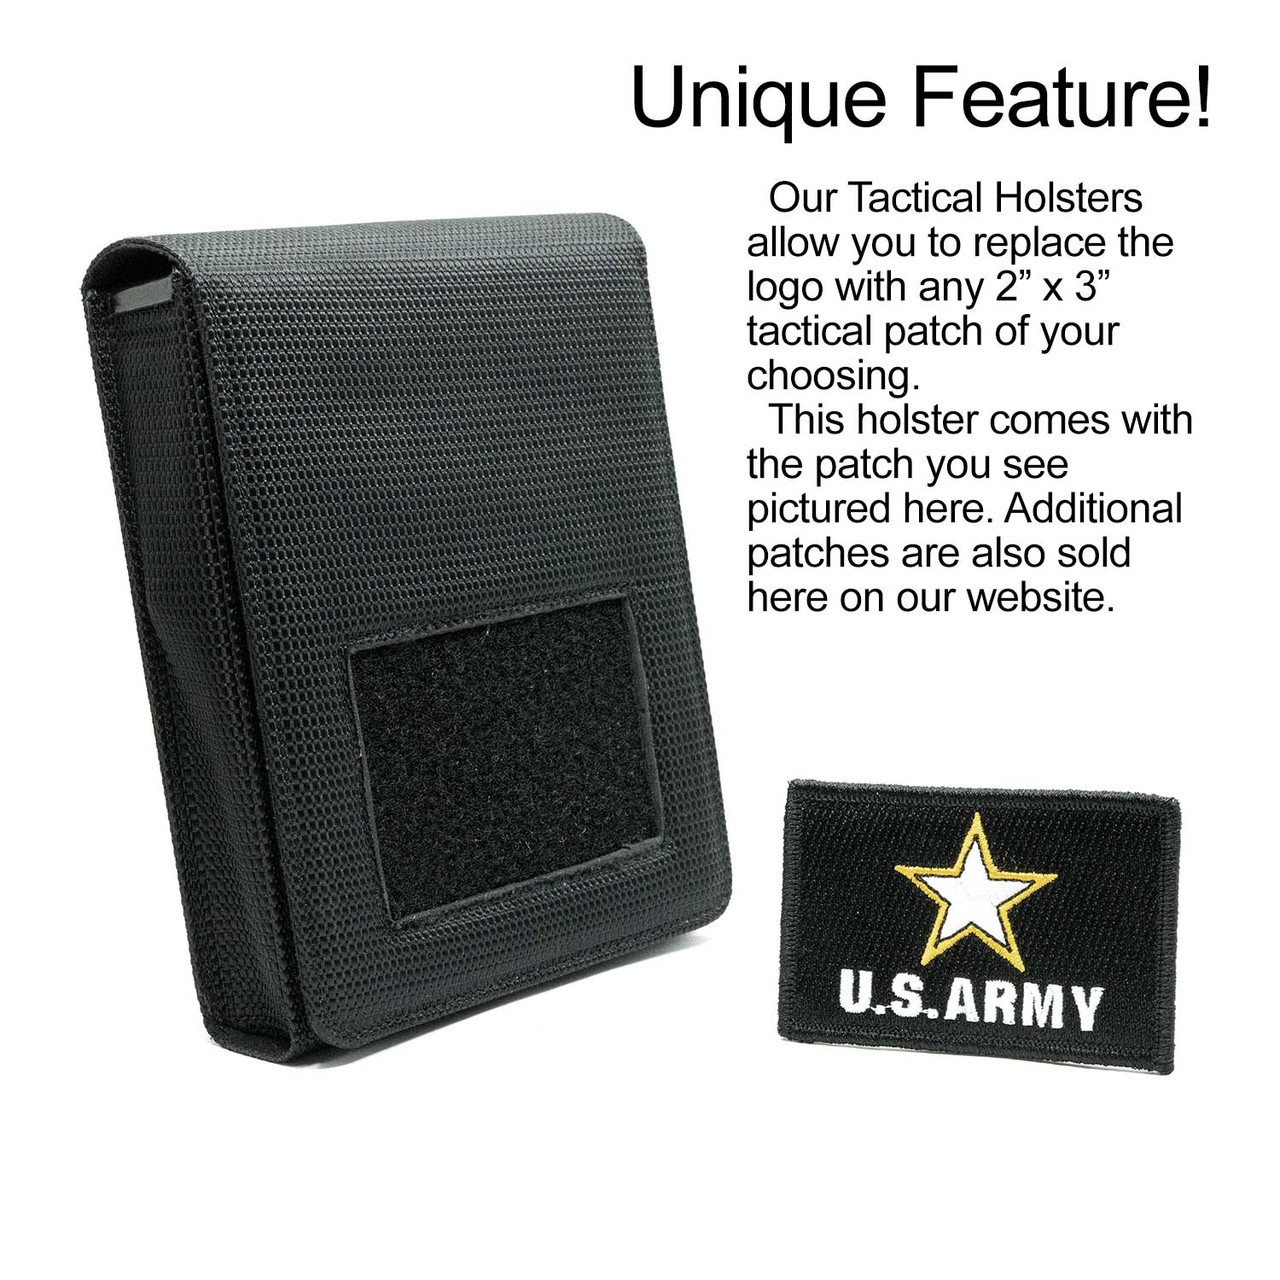 Taurus G2S Army Tactical Patch Holster